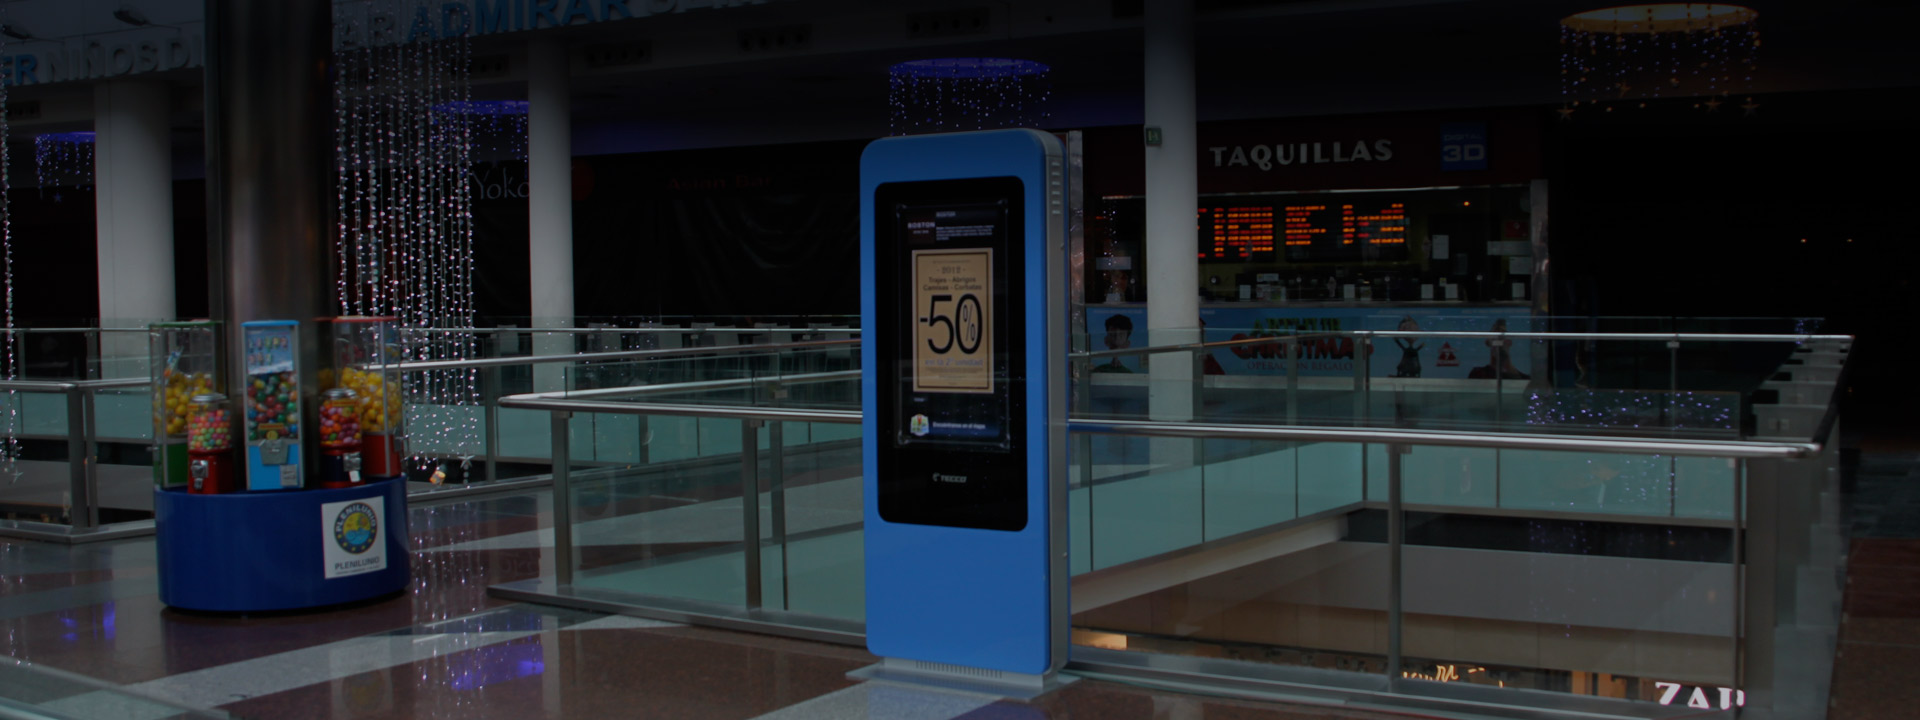 TECCO DIGITAL KIOSKS